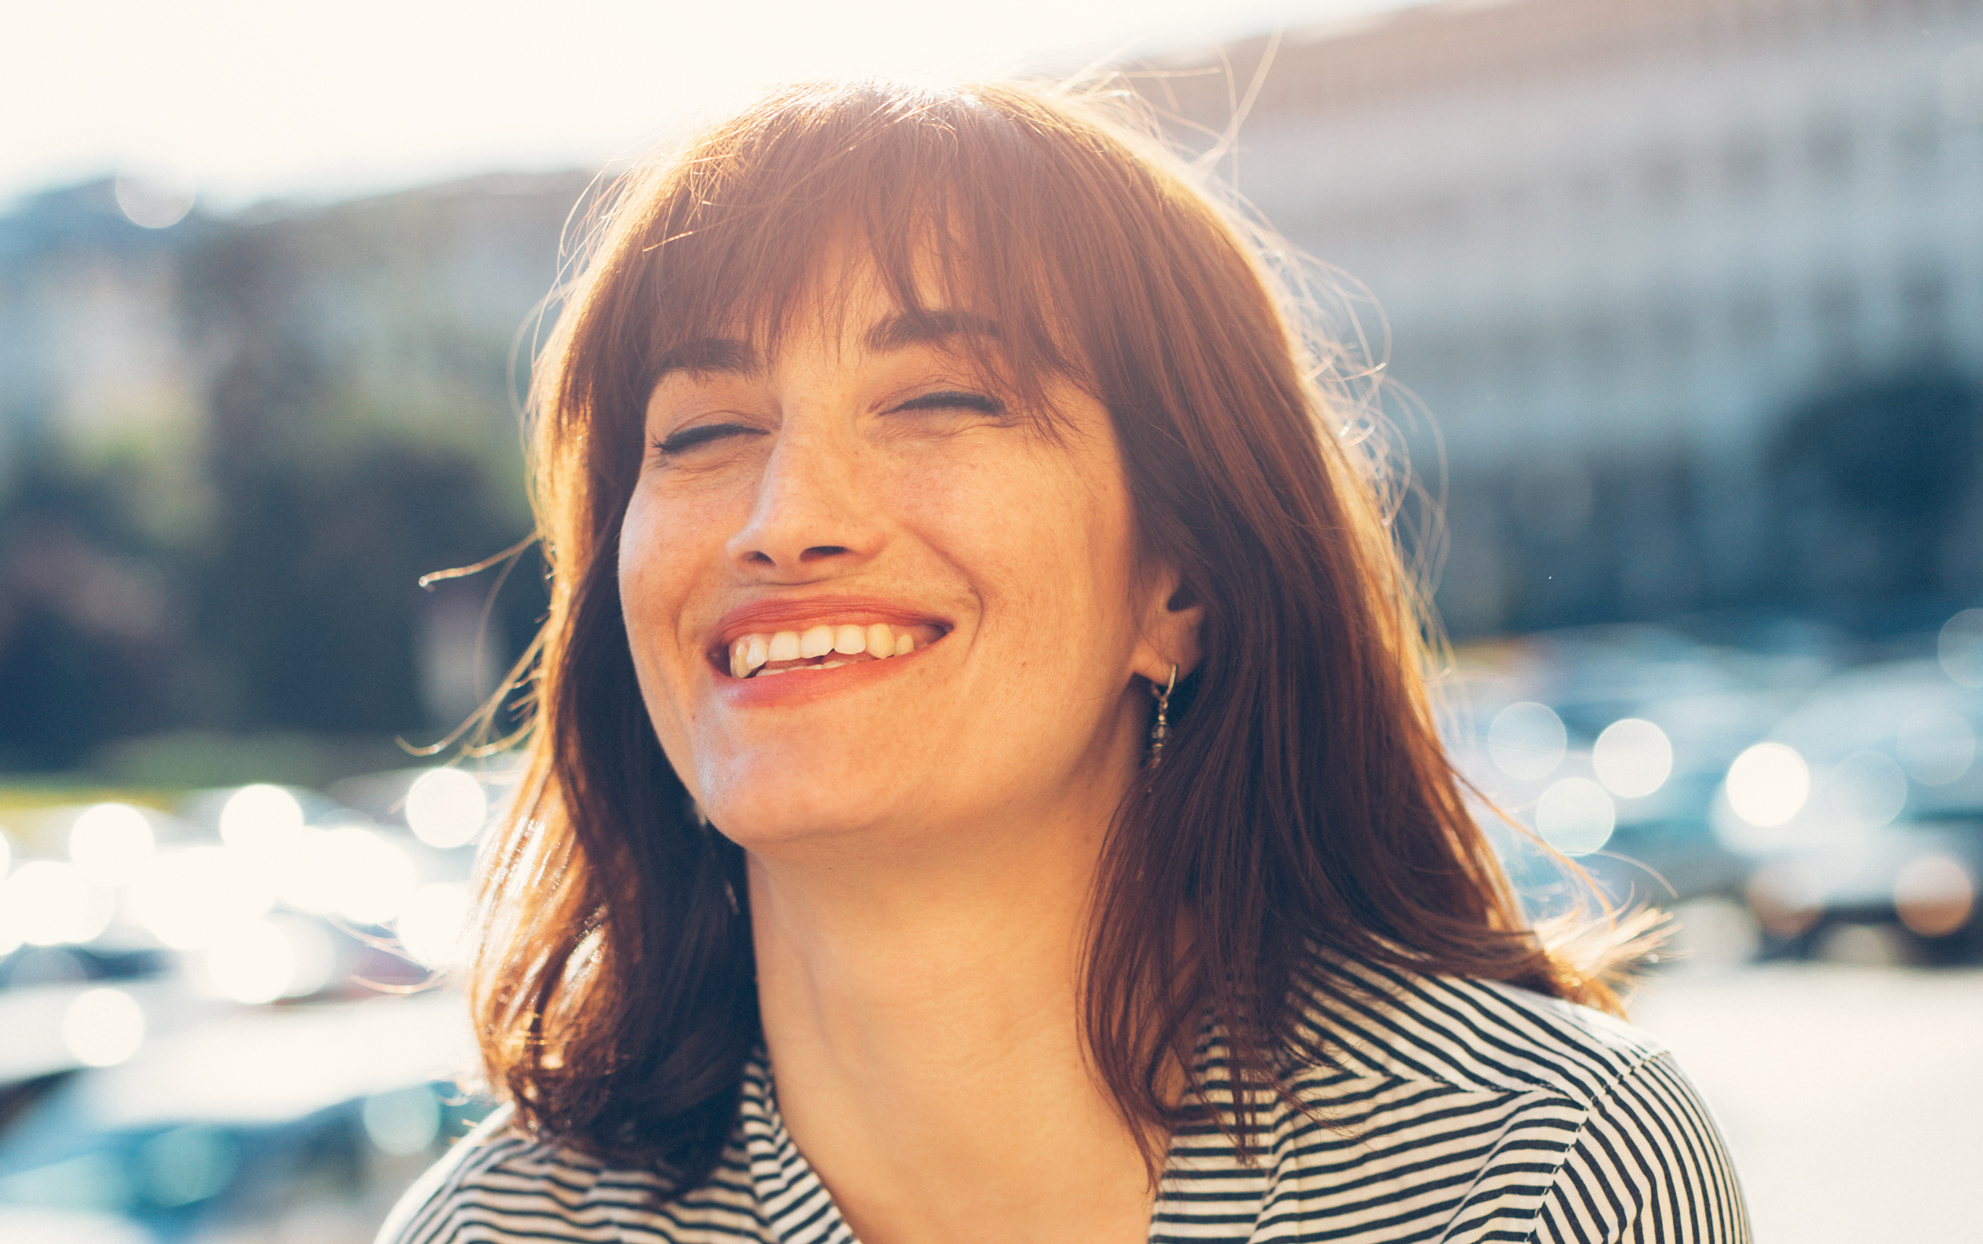 woman outside in the sunshine with brown long bob smiling in a striped shirt.